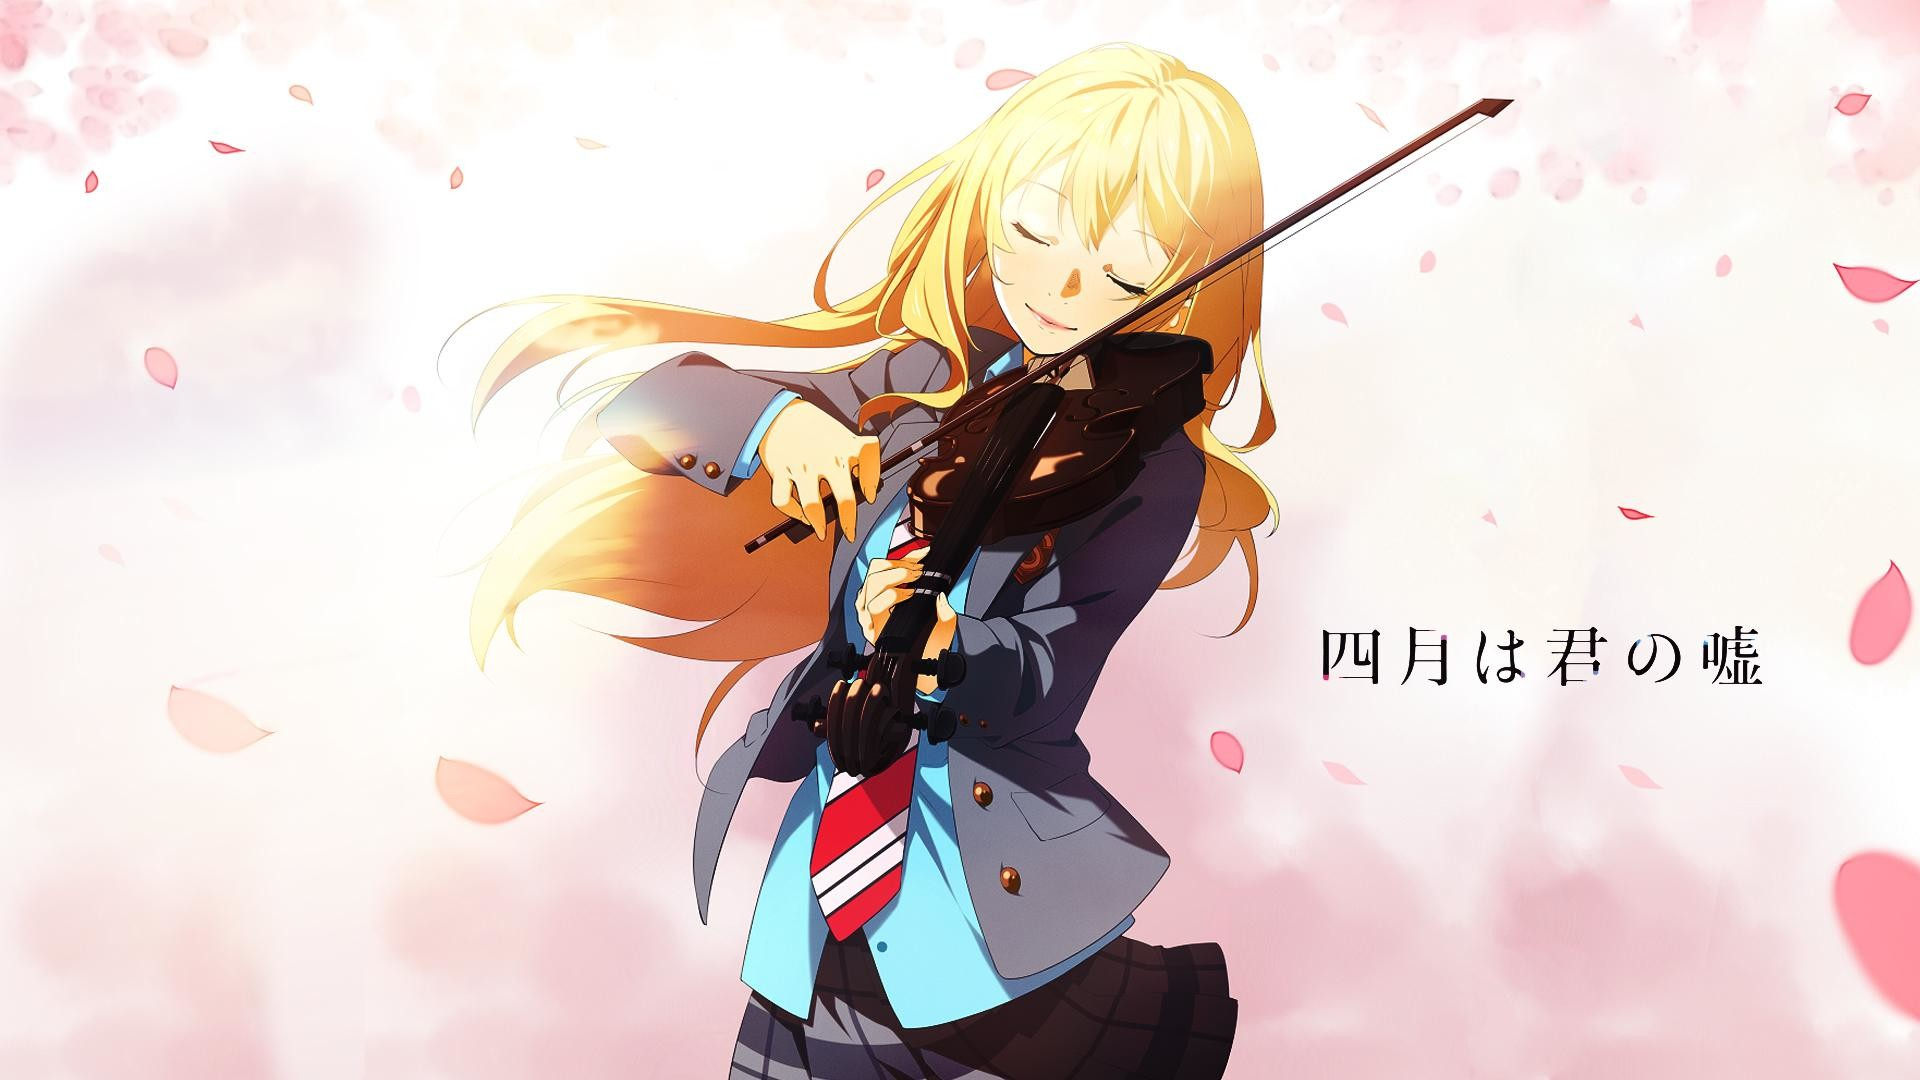 Res: 1920x1080, Your Lie In April